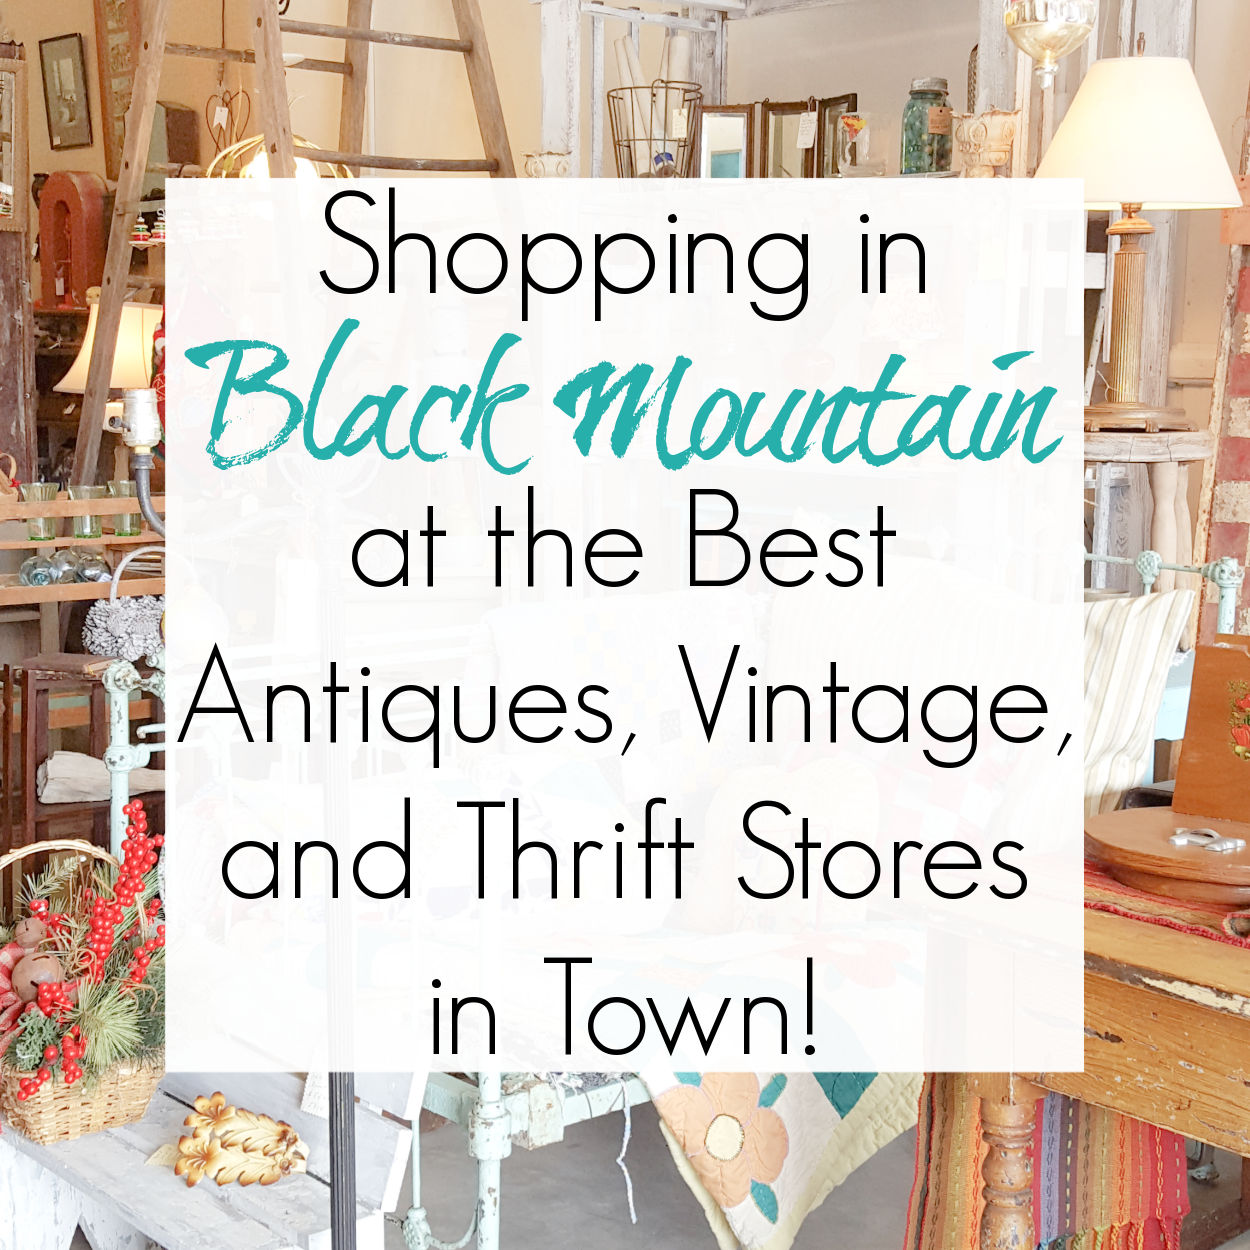 Antiquing in Marion and Black Mountain, NC